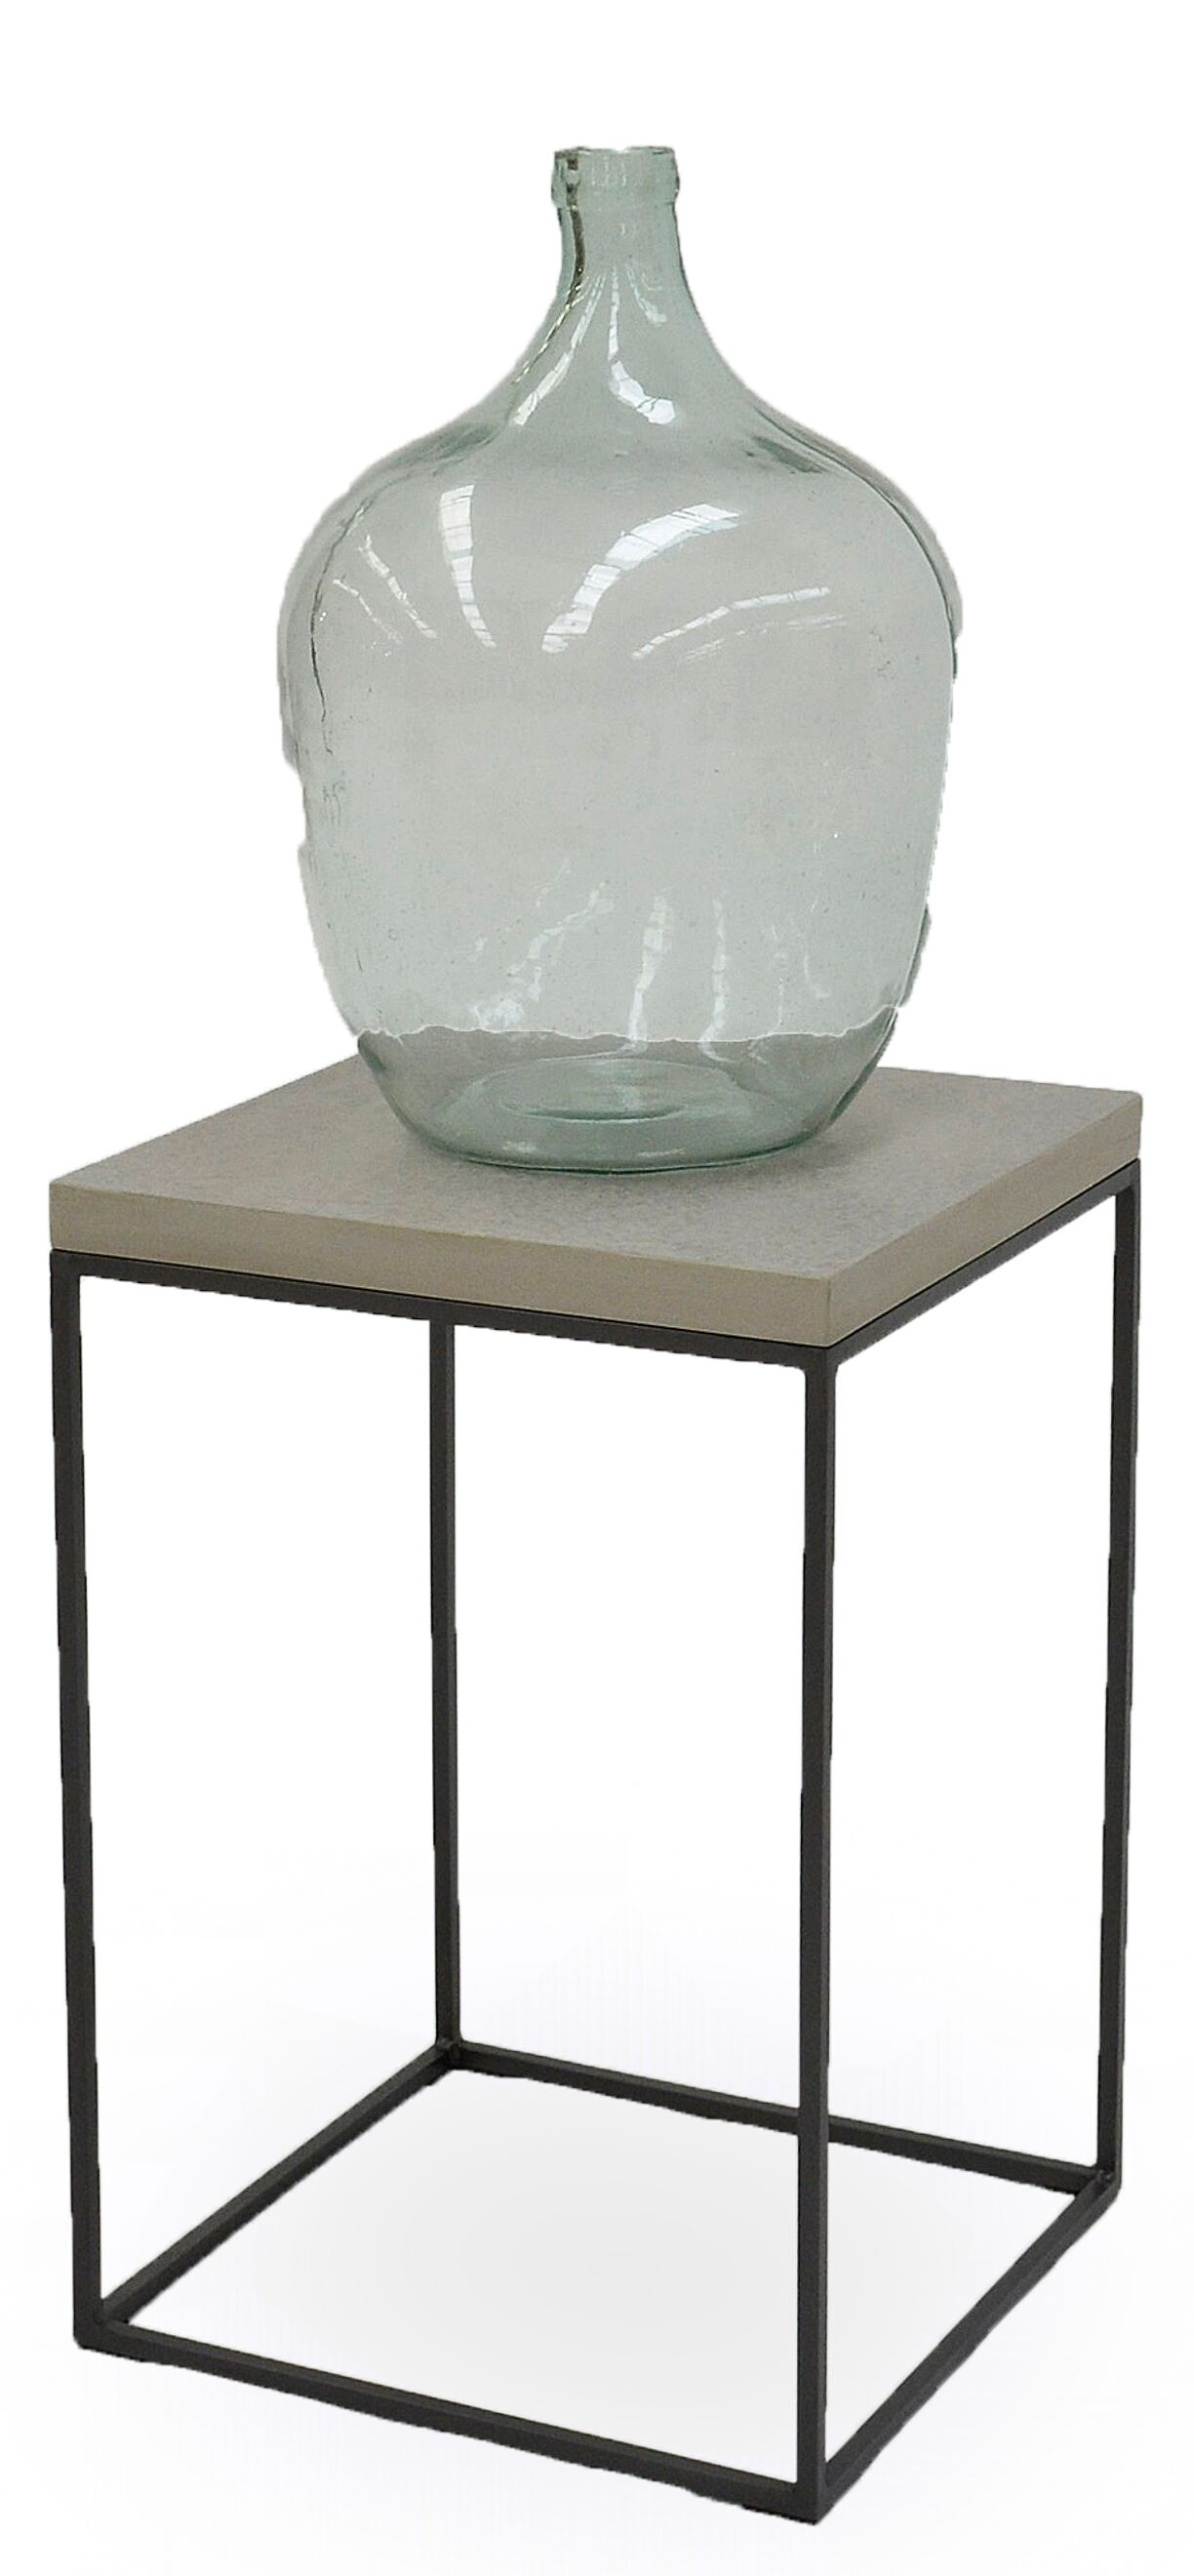 End Table with Concrete Board Top